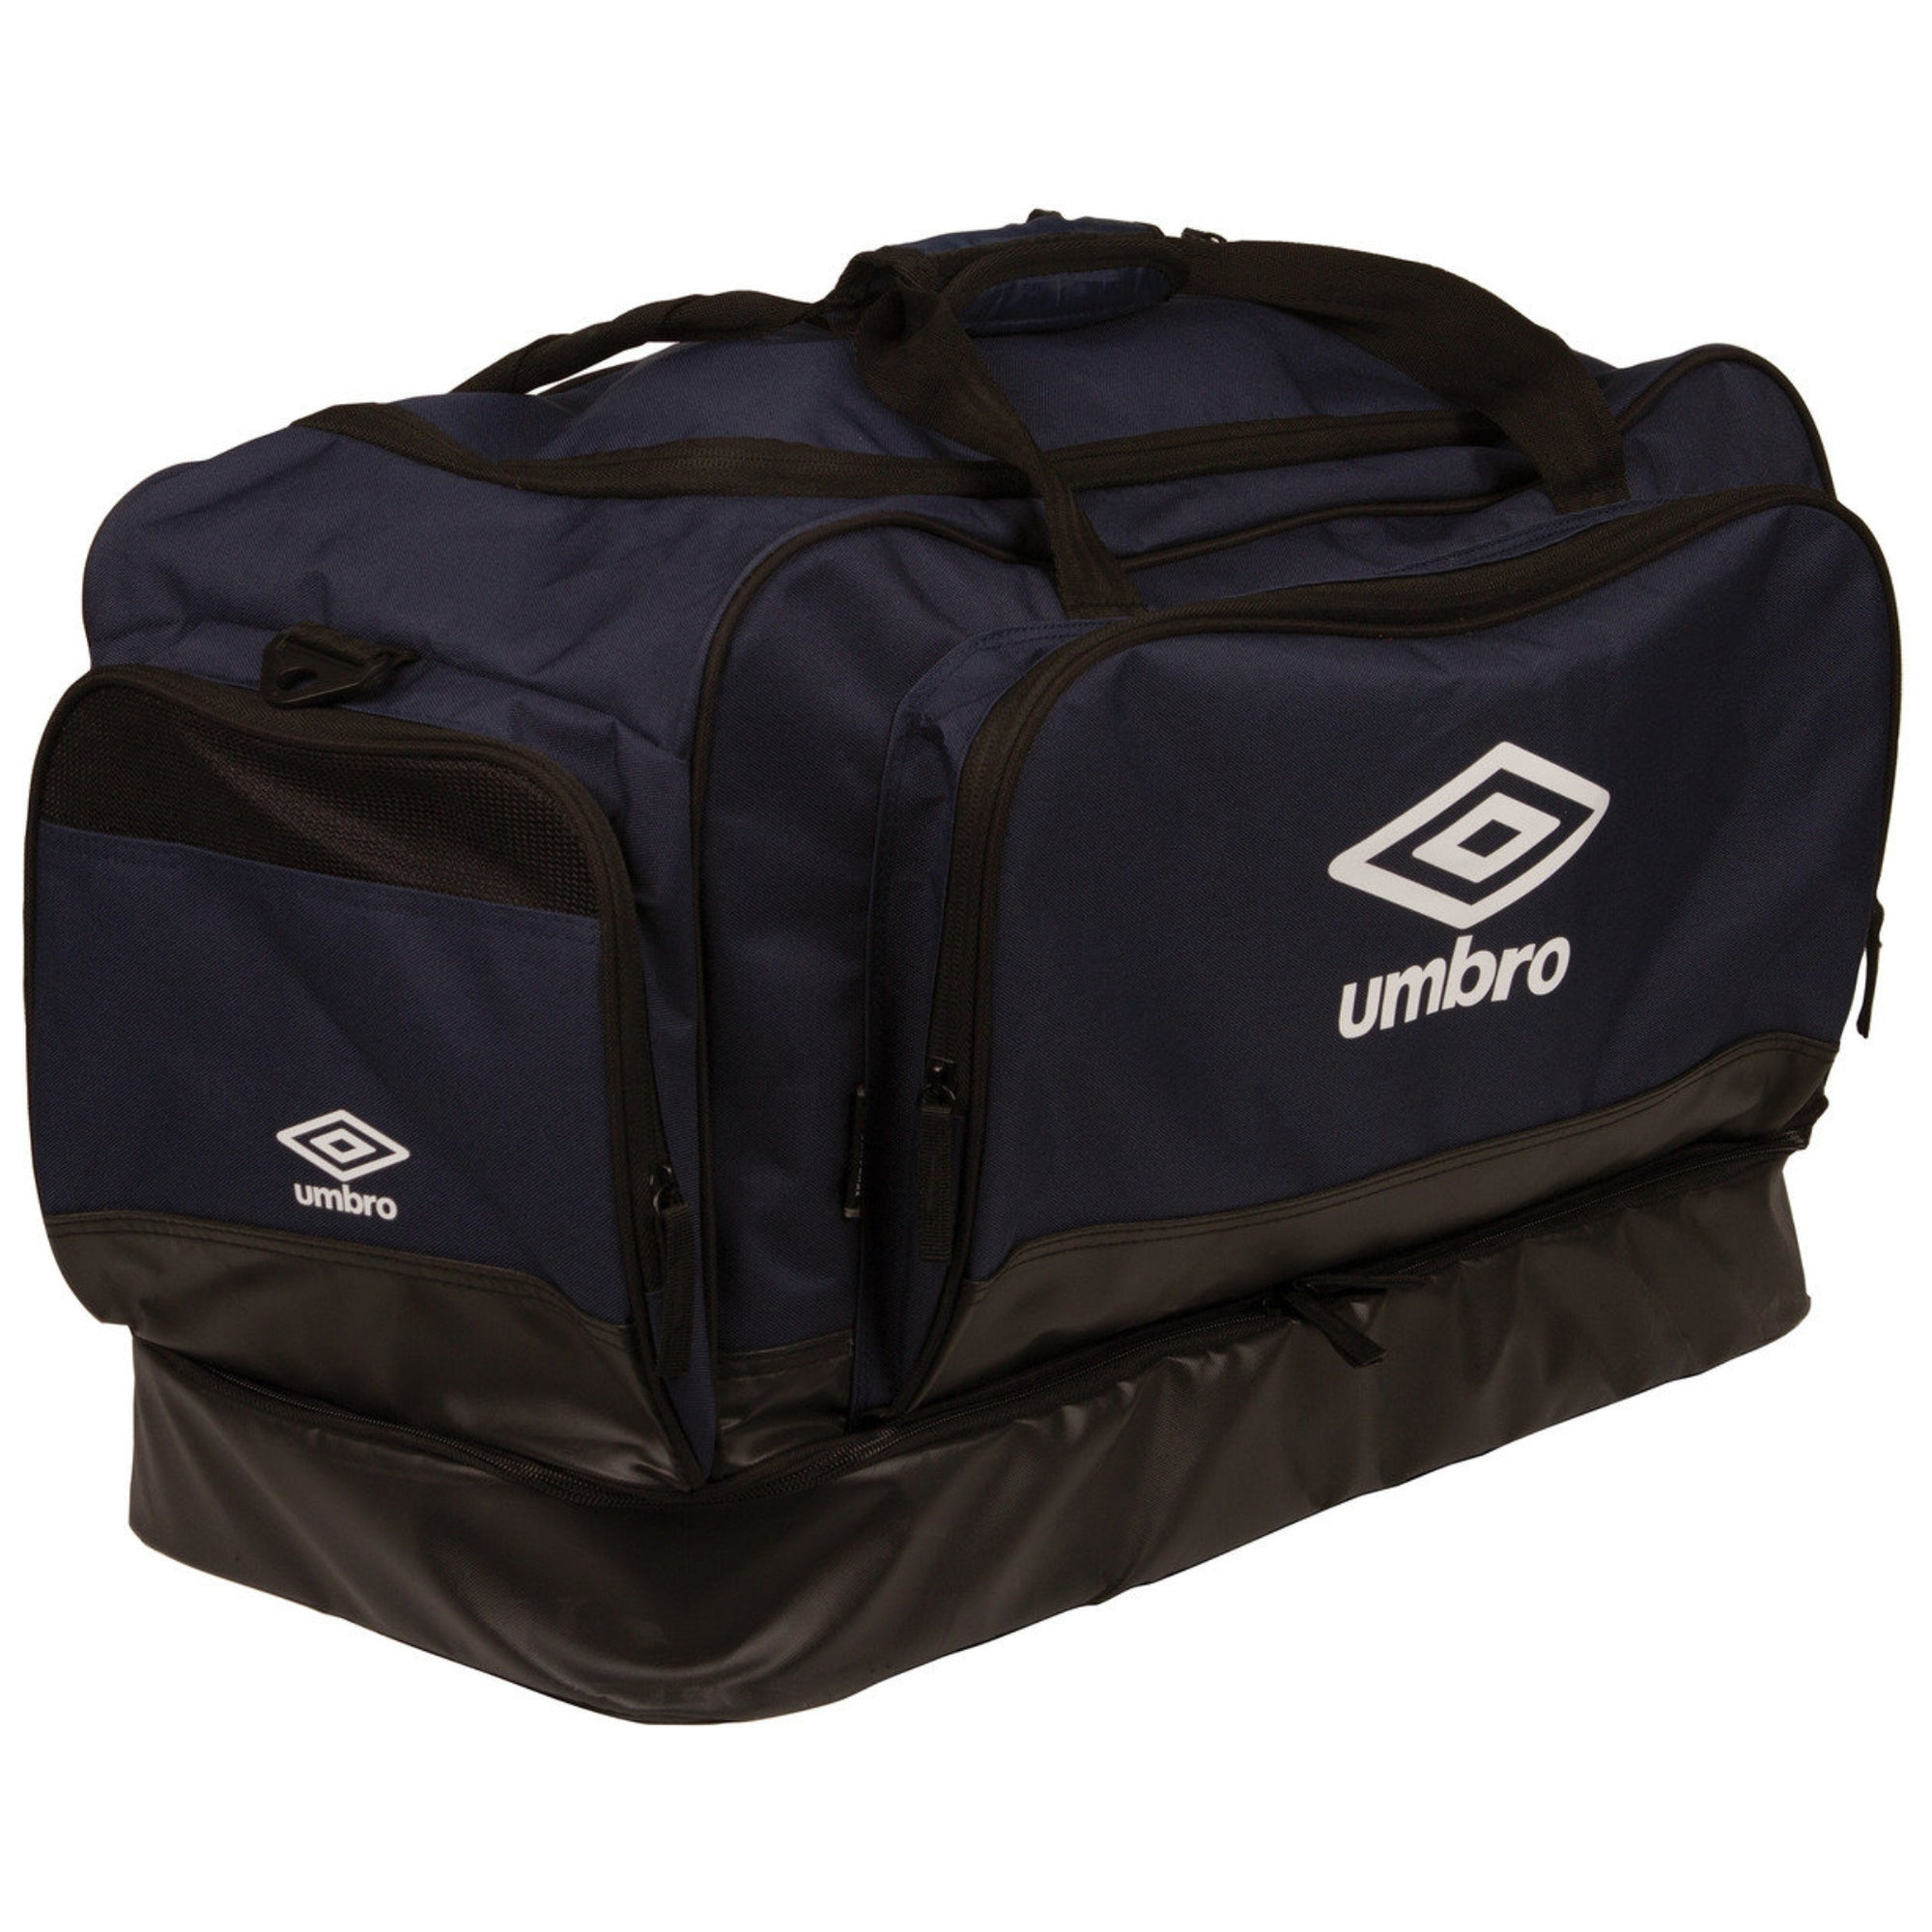 Umbro Medium Hardbase Holdall - Dark Navy/White